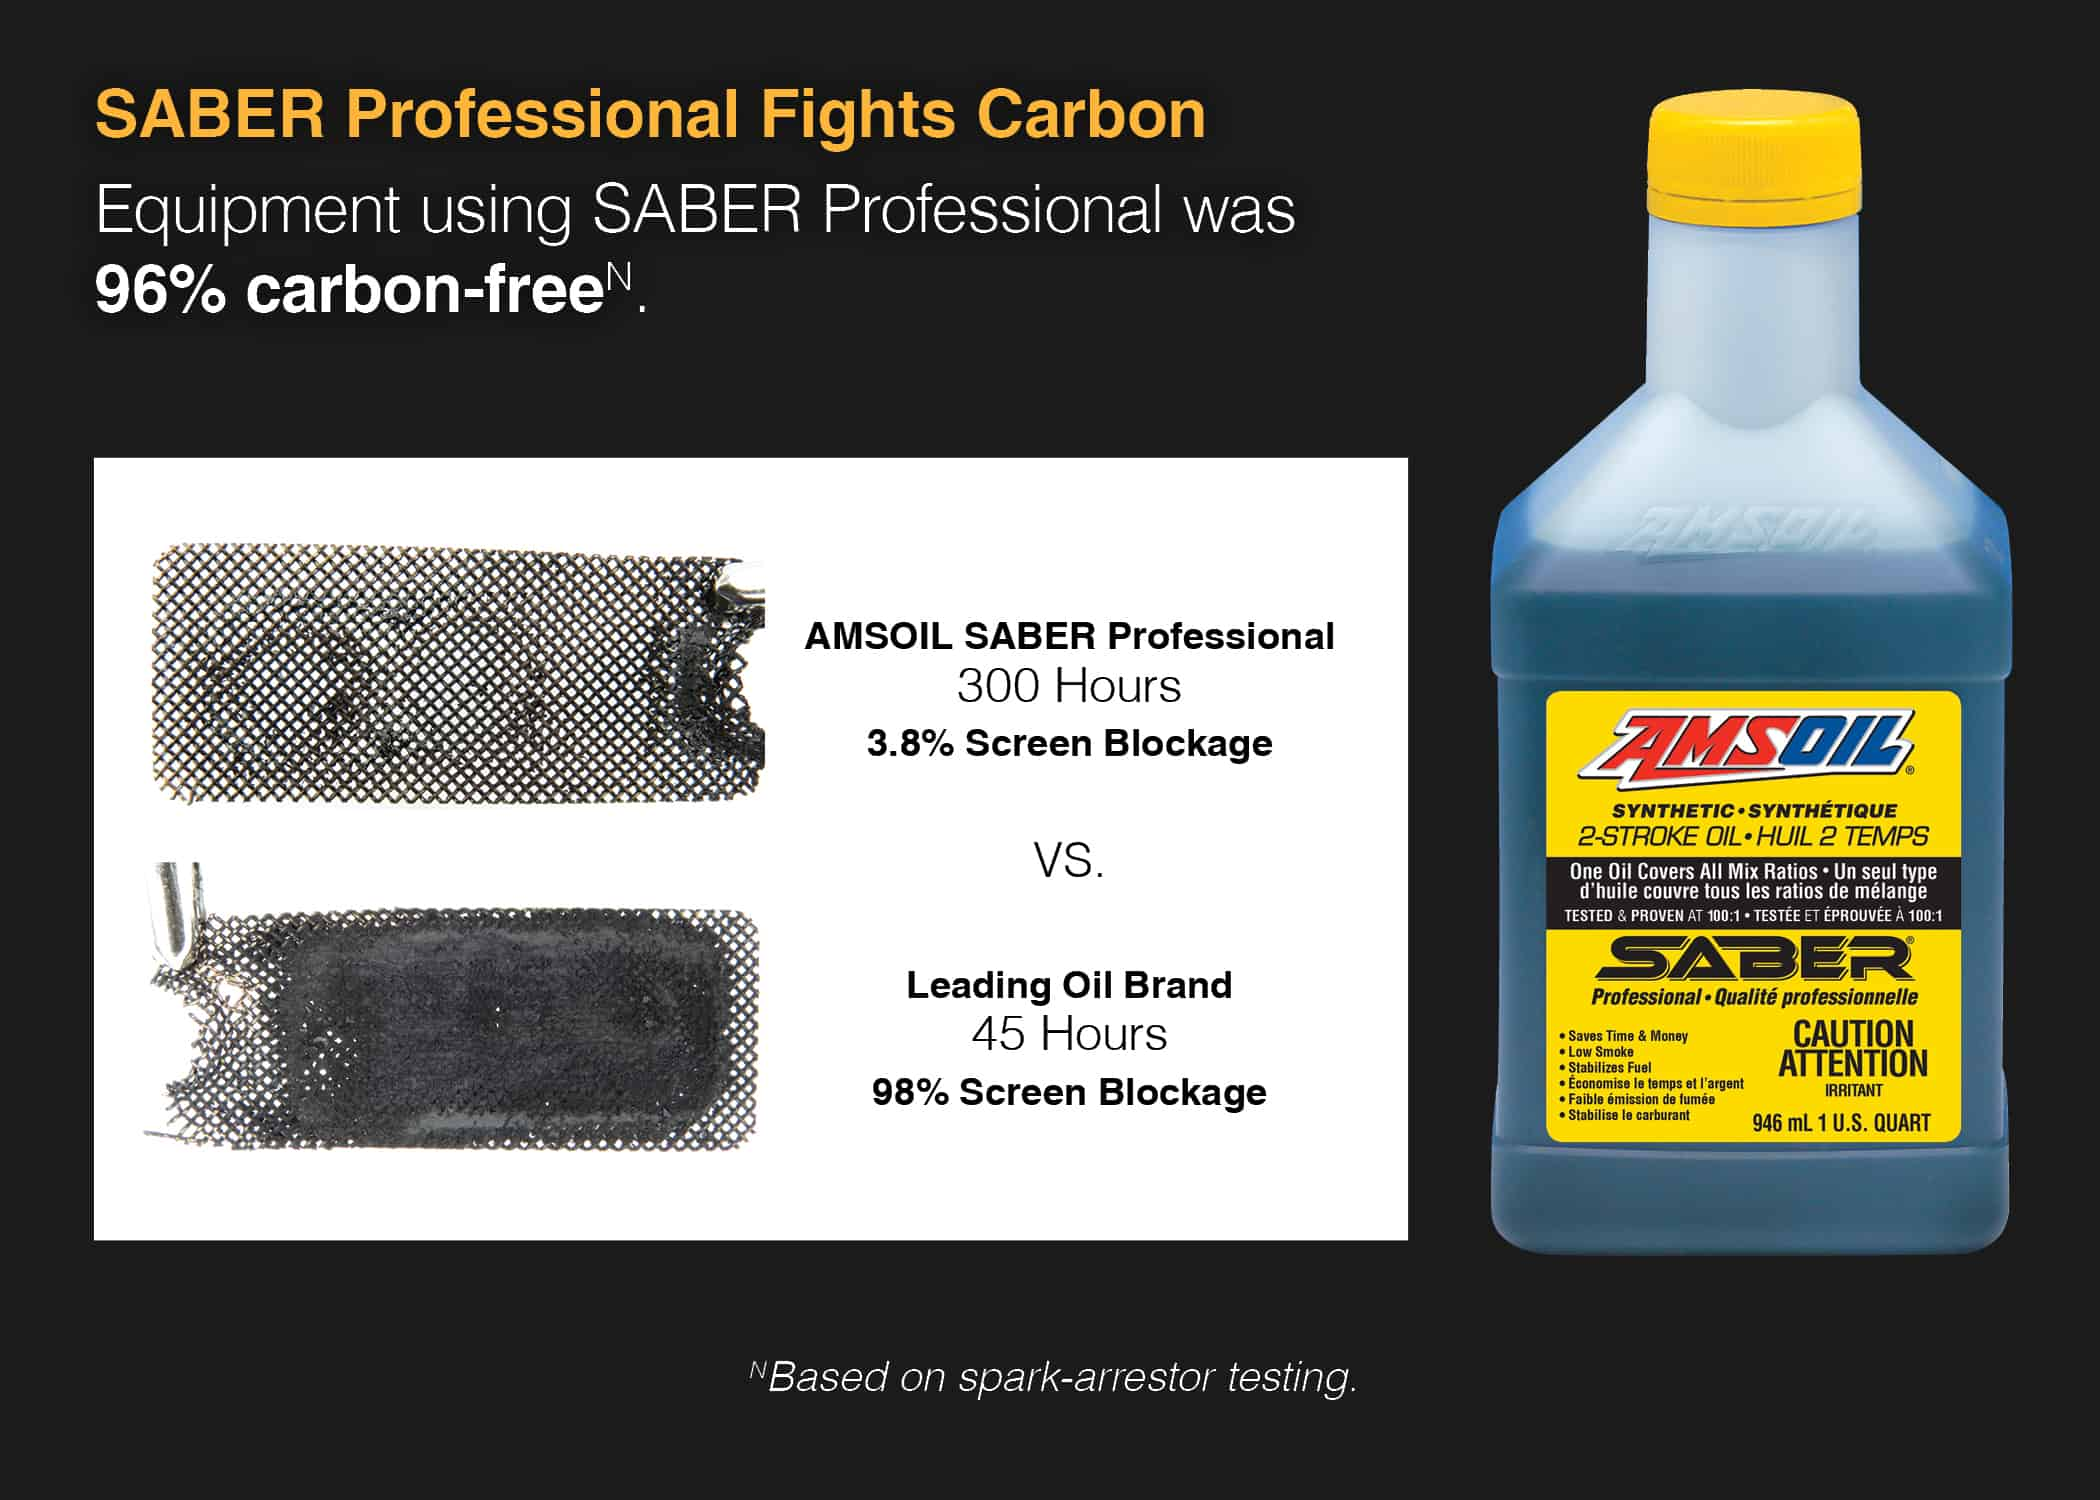 SABER® Professional Synthetic 2-Stroke Oil